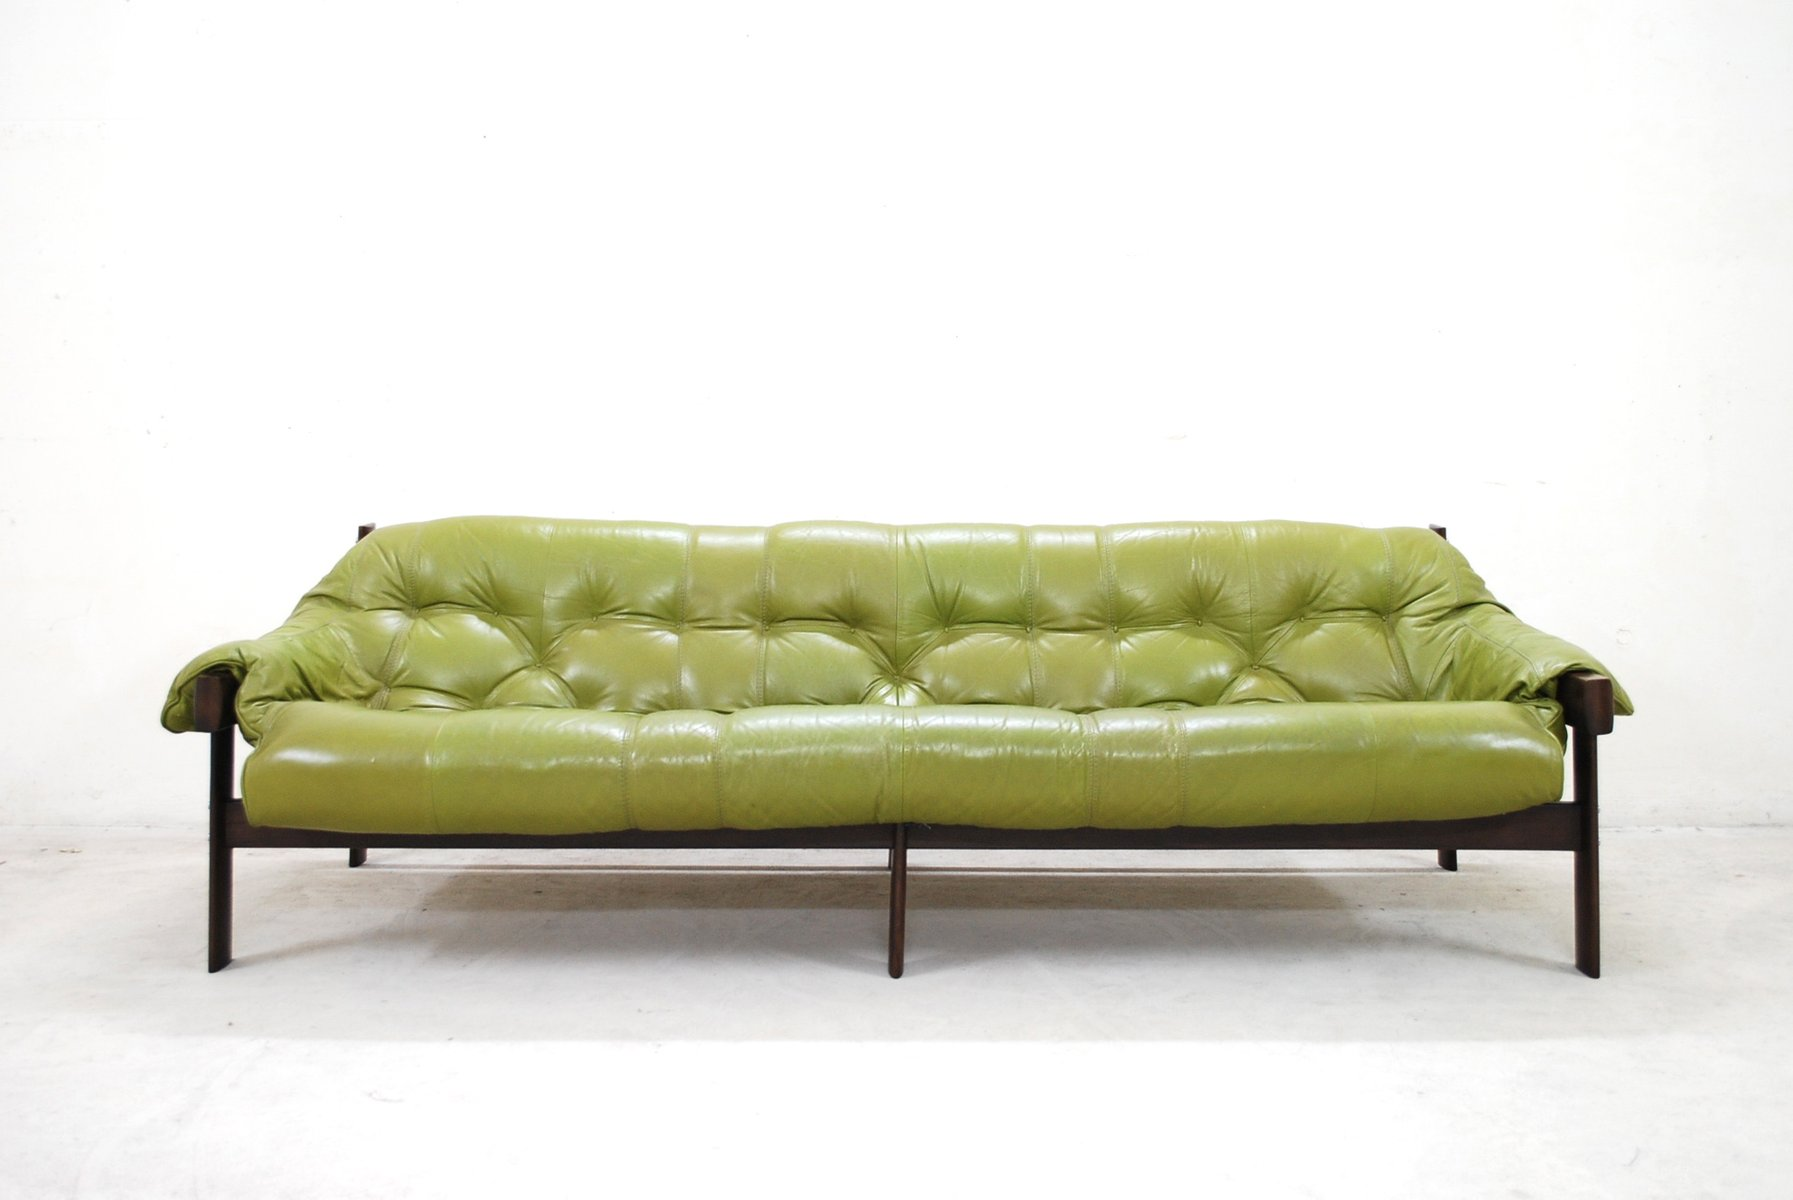 Attirant Model MP 041 Lime Green Leather Sofa From Percival Lafer, 1961